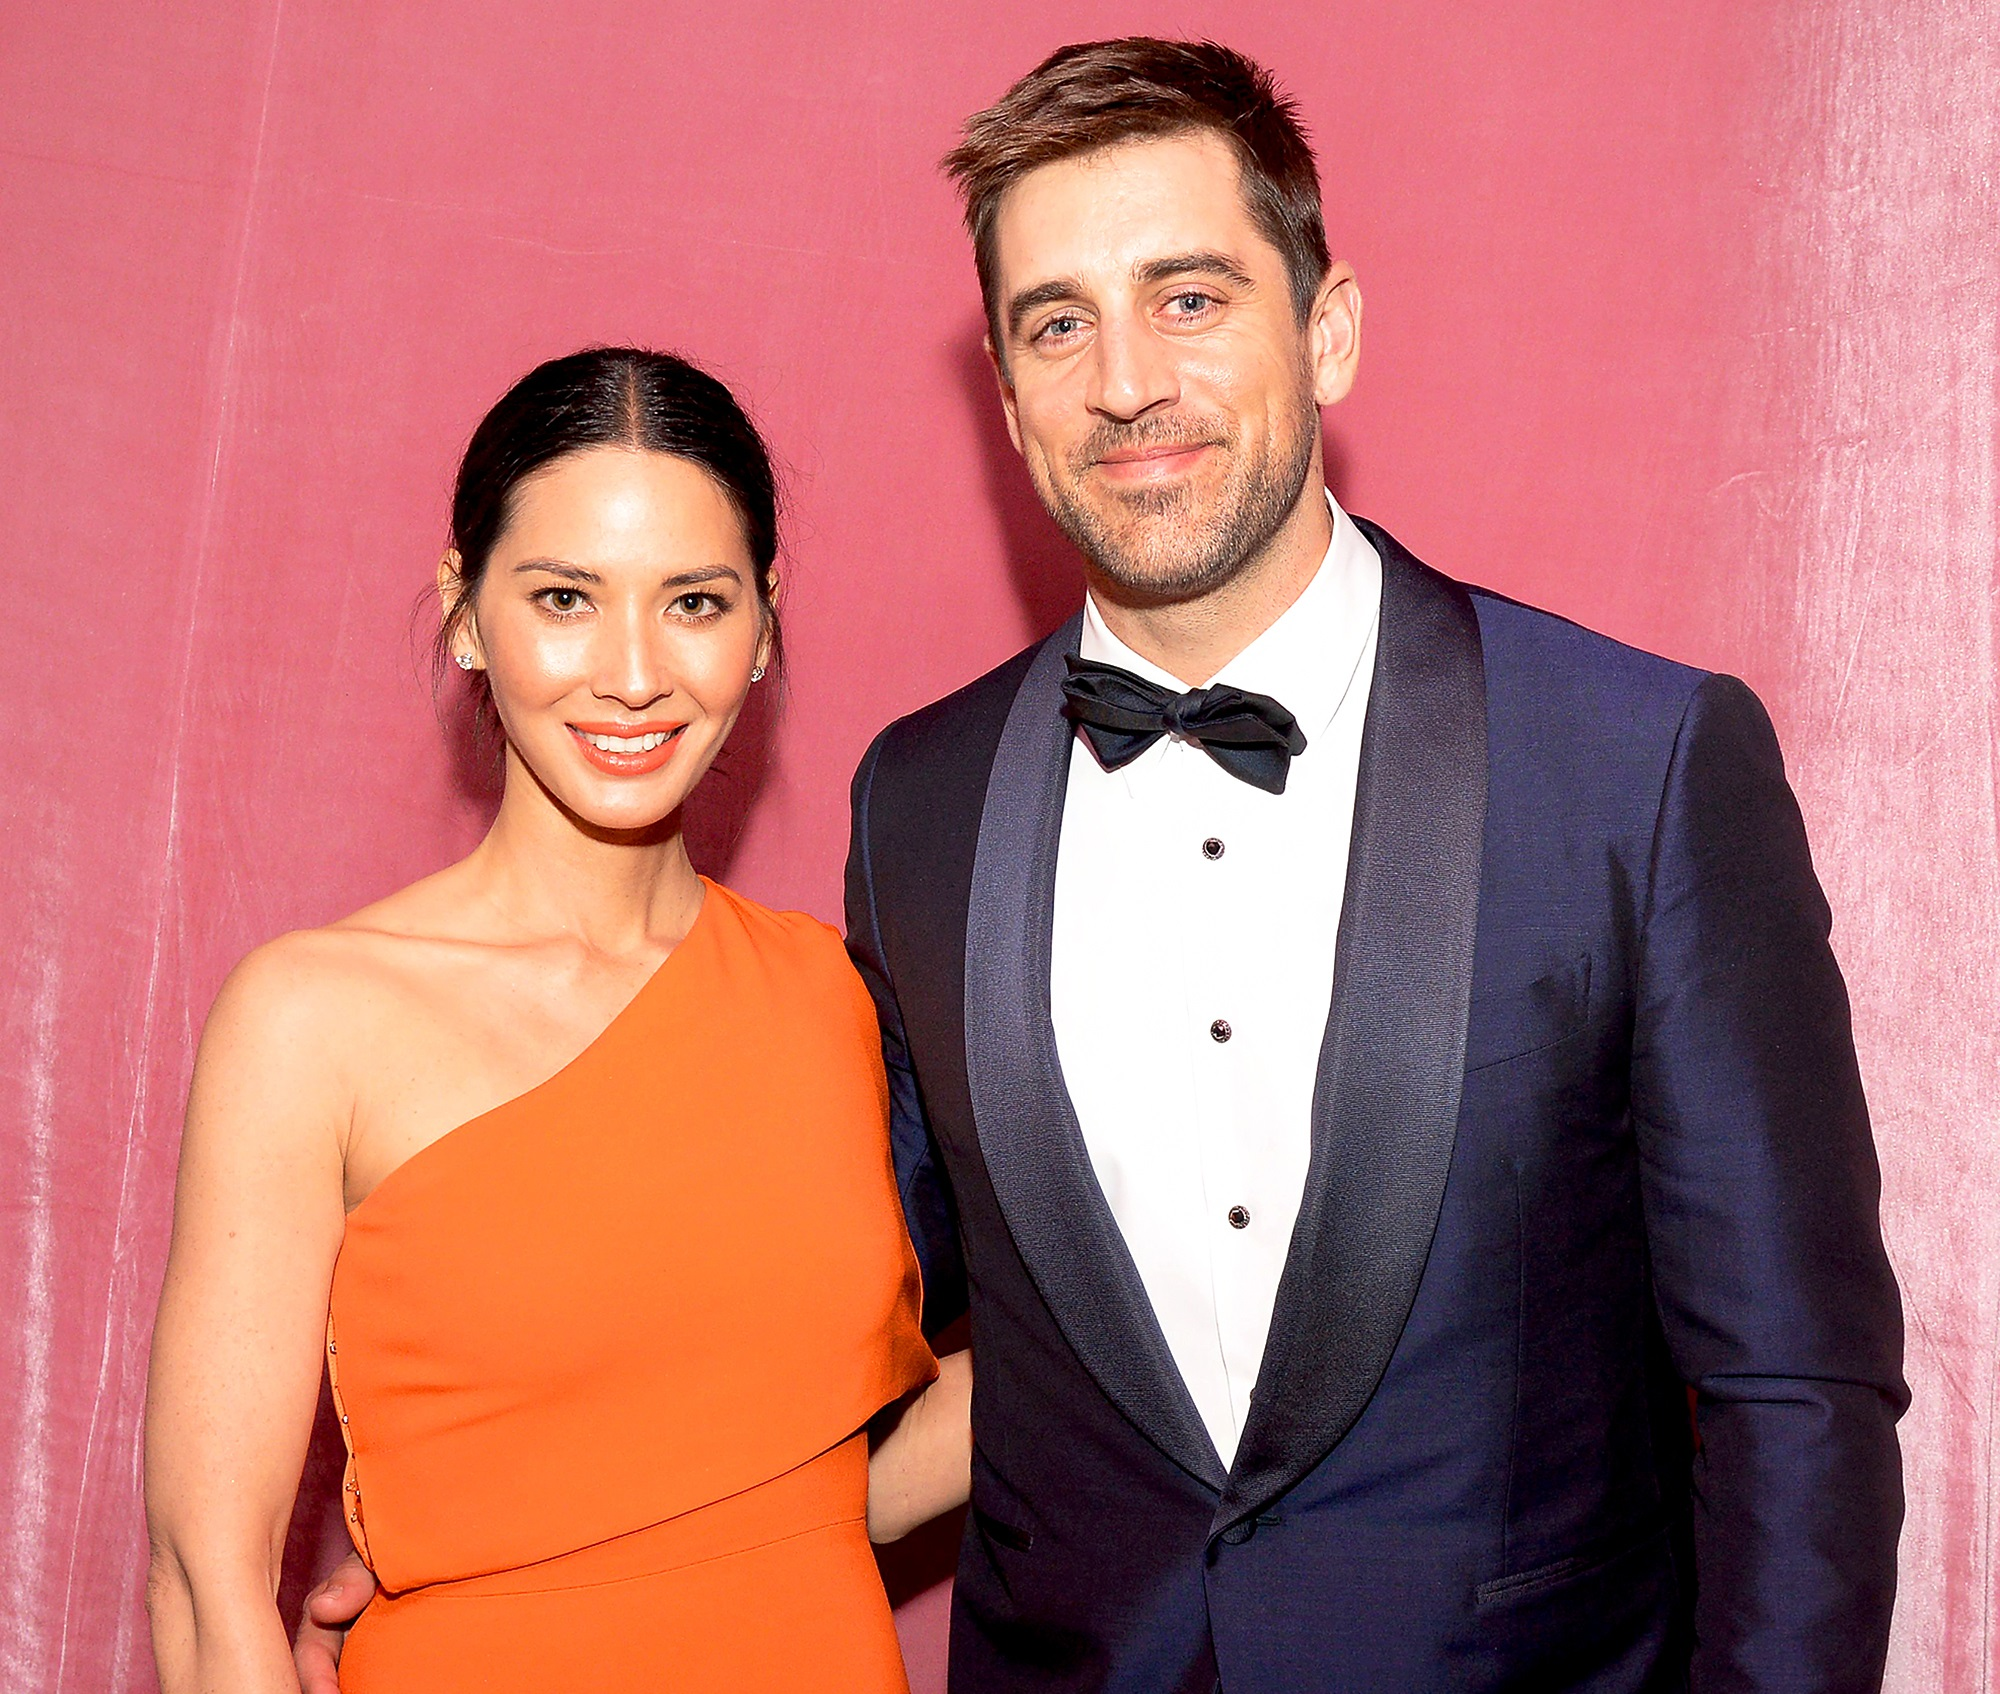 Olivia Munn Finally Opens up about Aaron Rodgers and his Family Drama